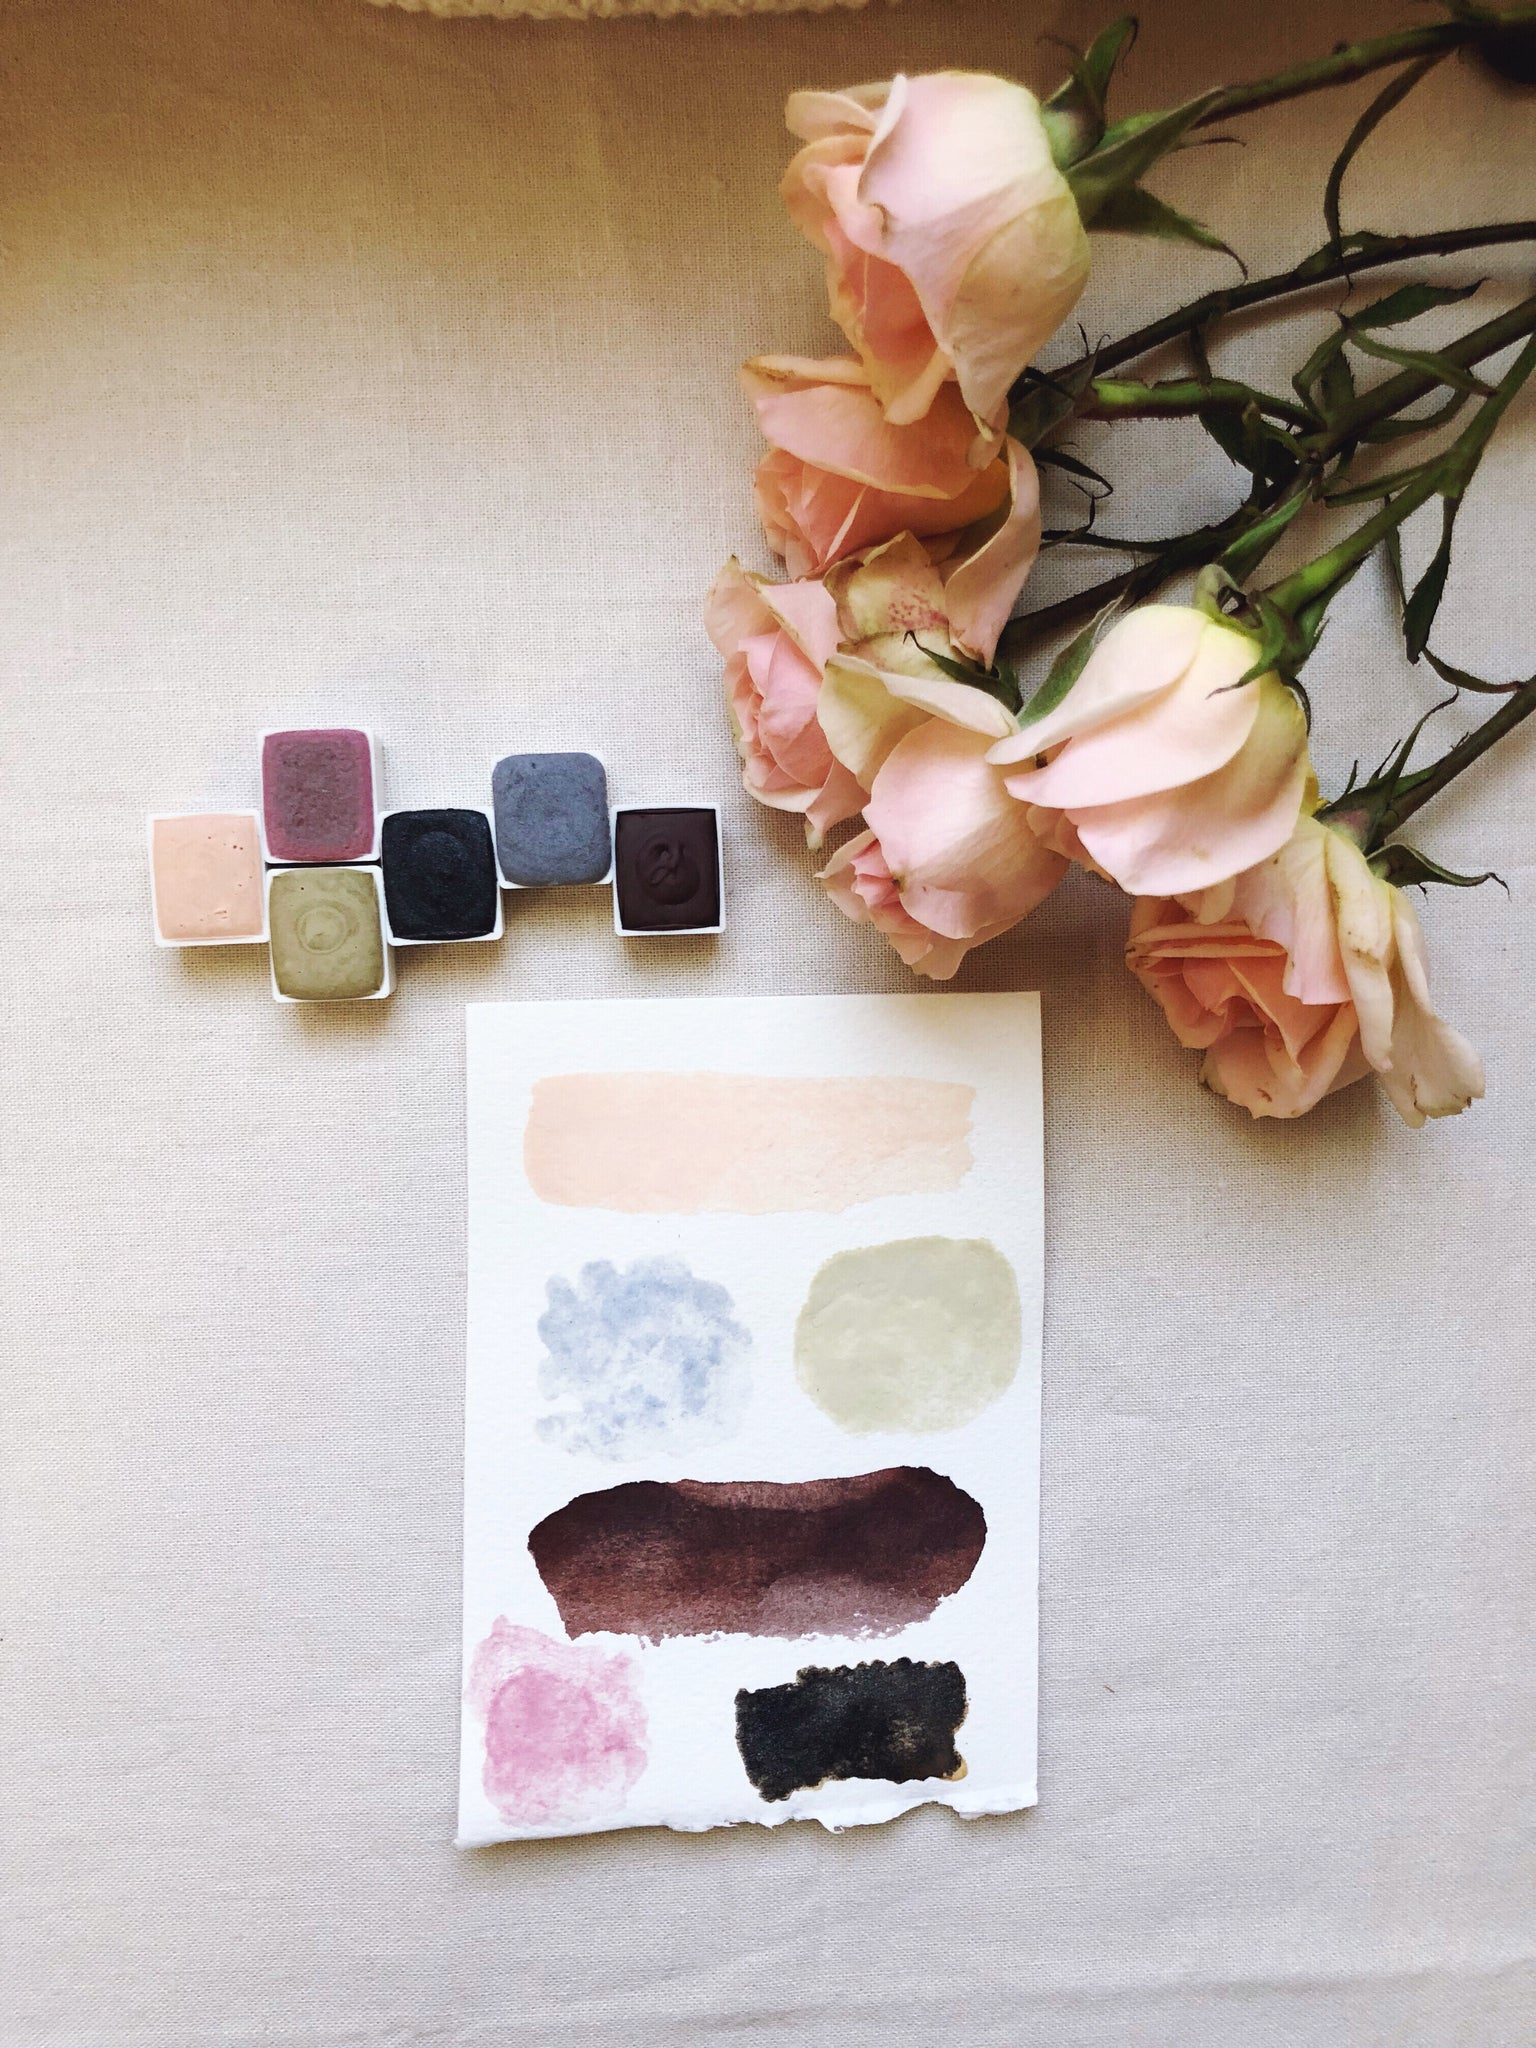 Rainy Day + Limited edition Gemstone Mineral watercolor palette